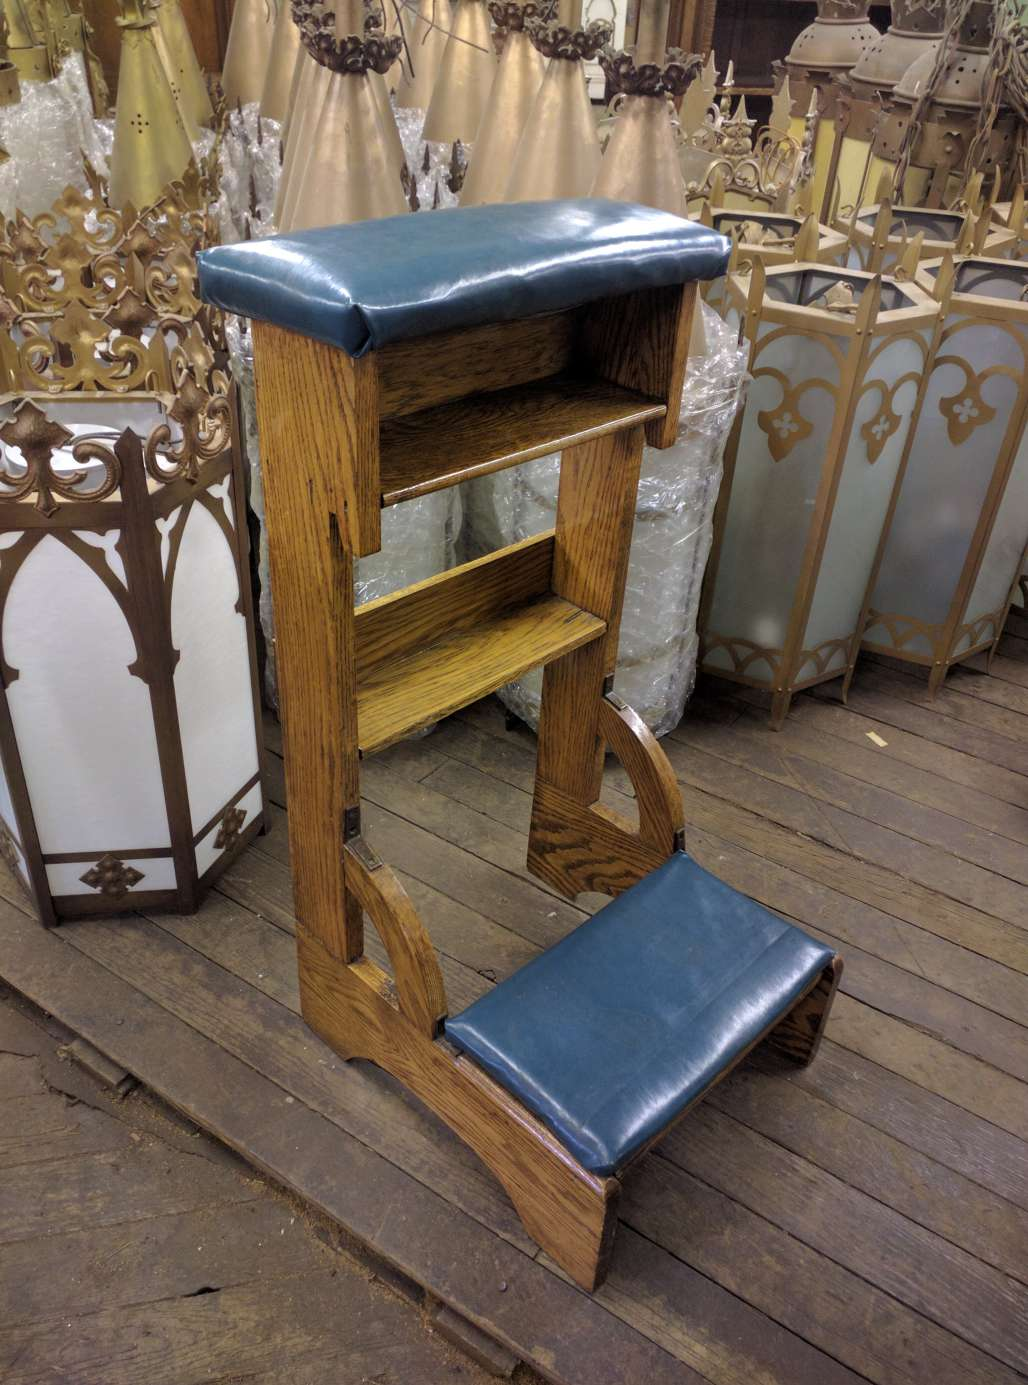 church chair with kneeler kids character chairs prie dieu kneelers used items